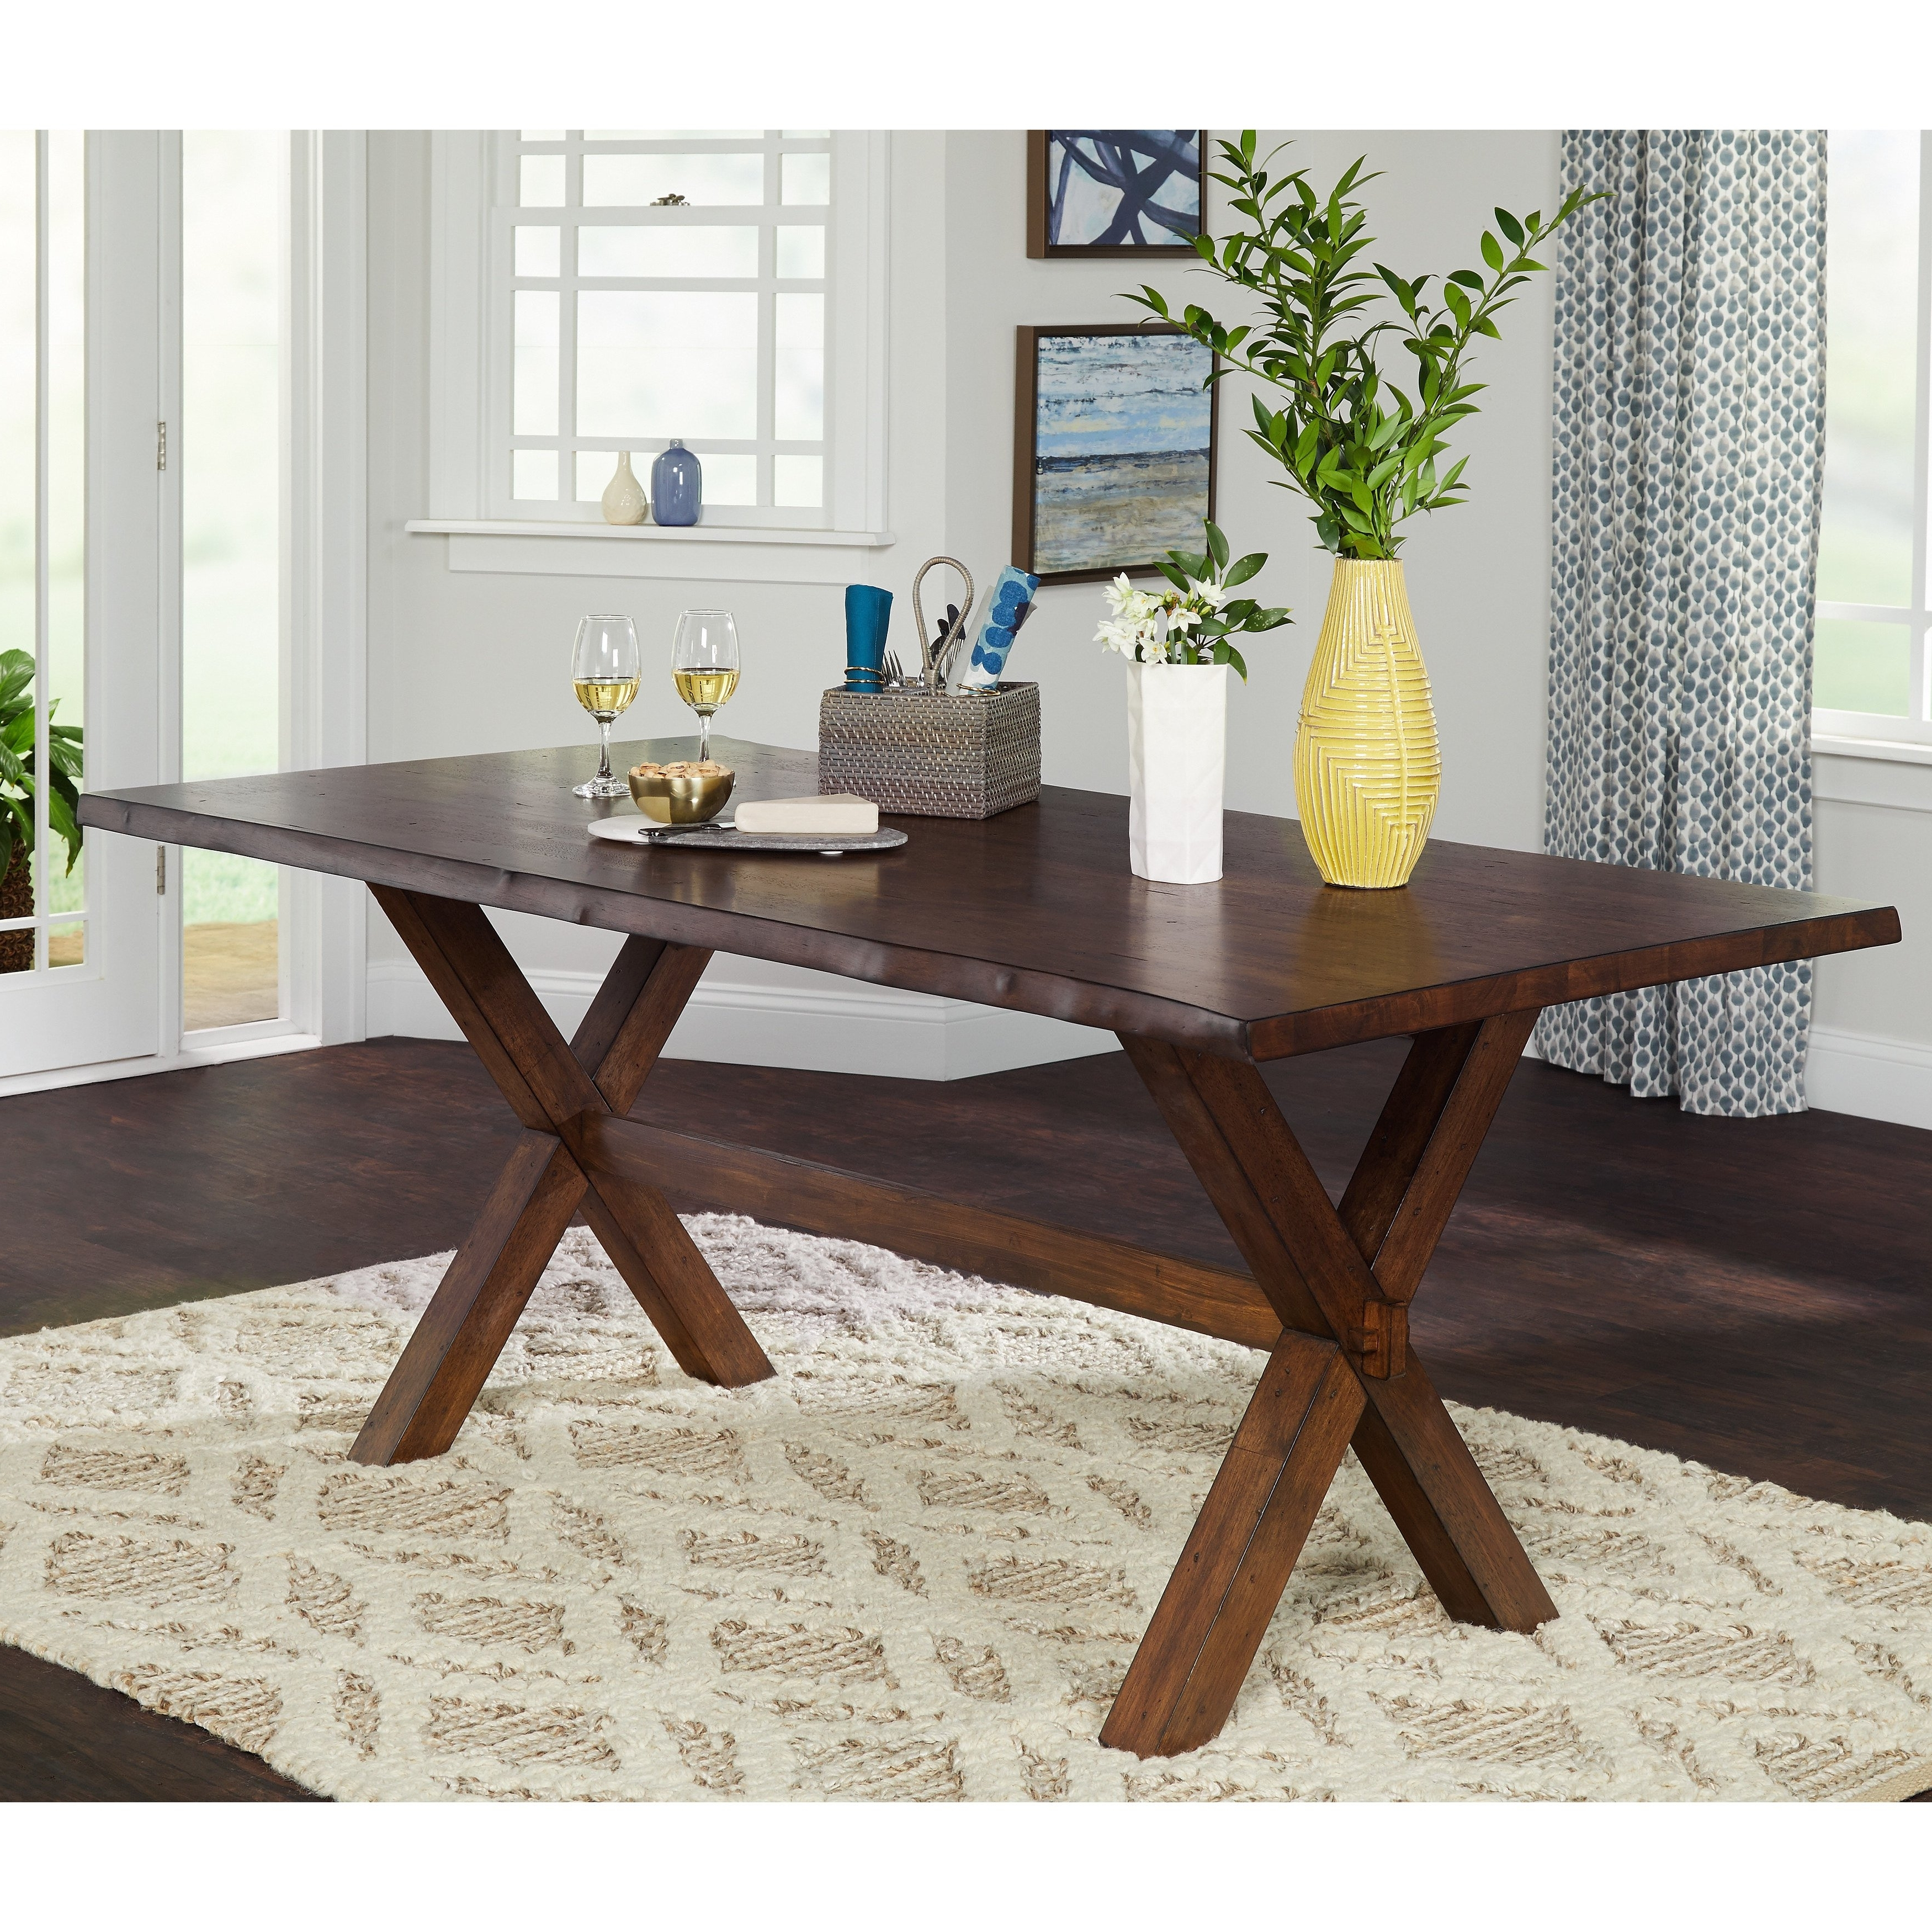 Solid Wood Dining Tables With Regard To Trendy Simple Living Mandeville Live Edge Solid Wood Dining Table – Walnut (View 18 of 25)